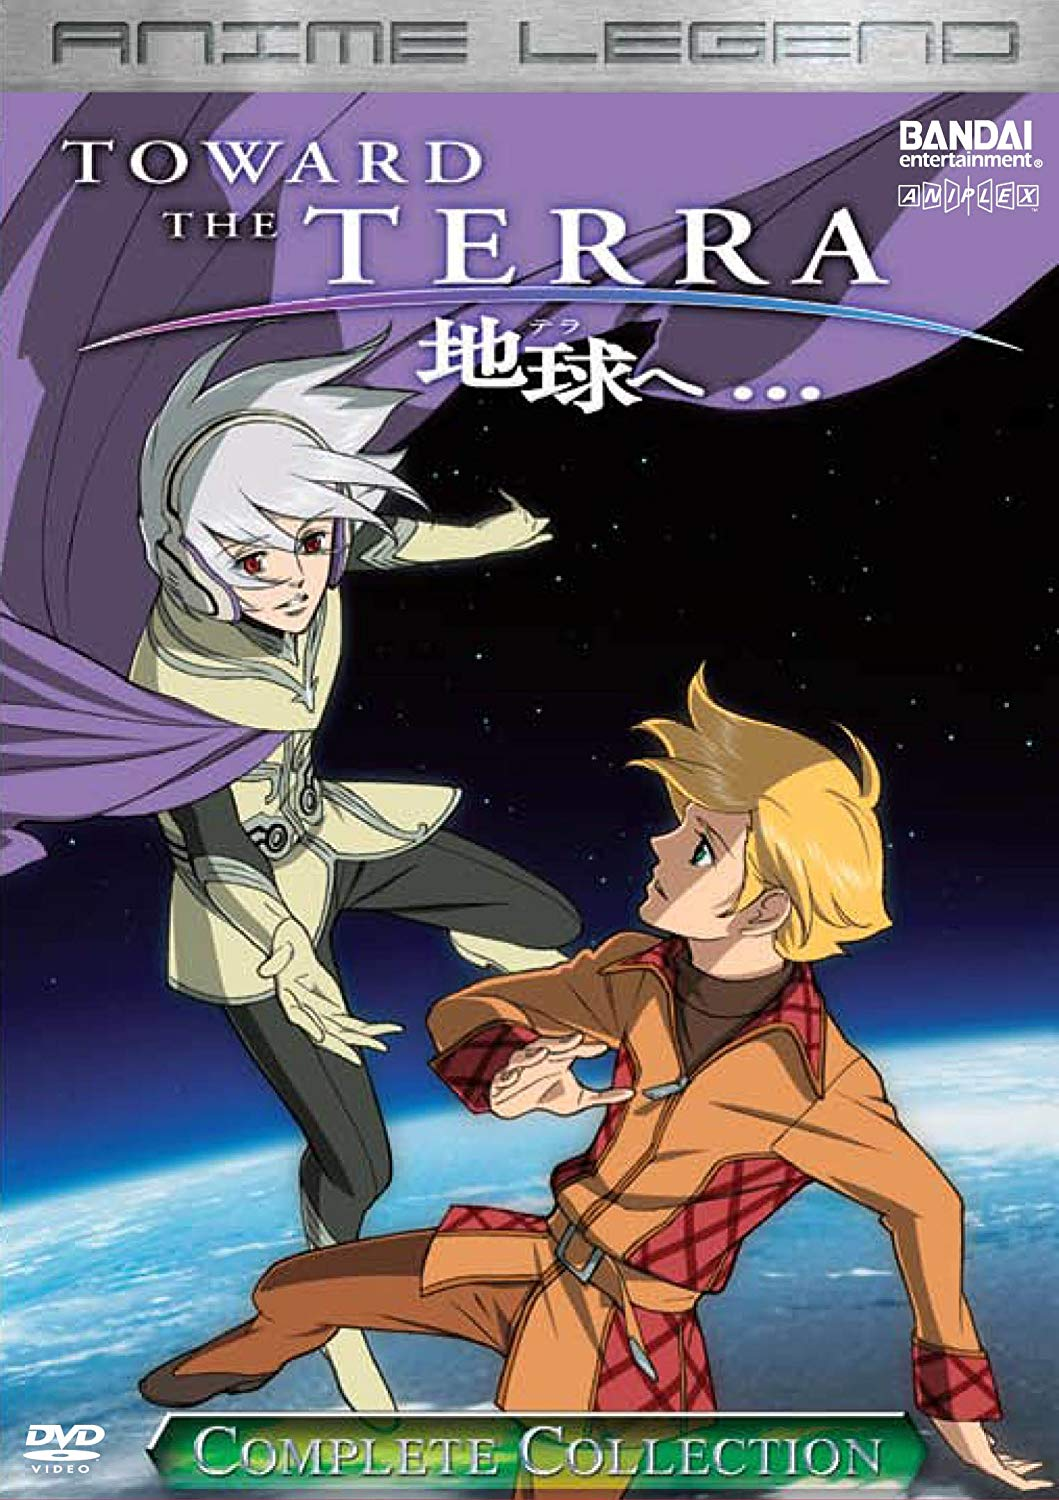 Anime cover: Toward the Terra